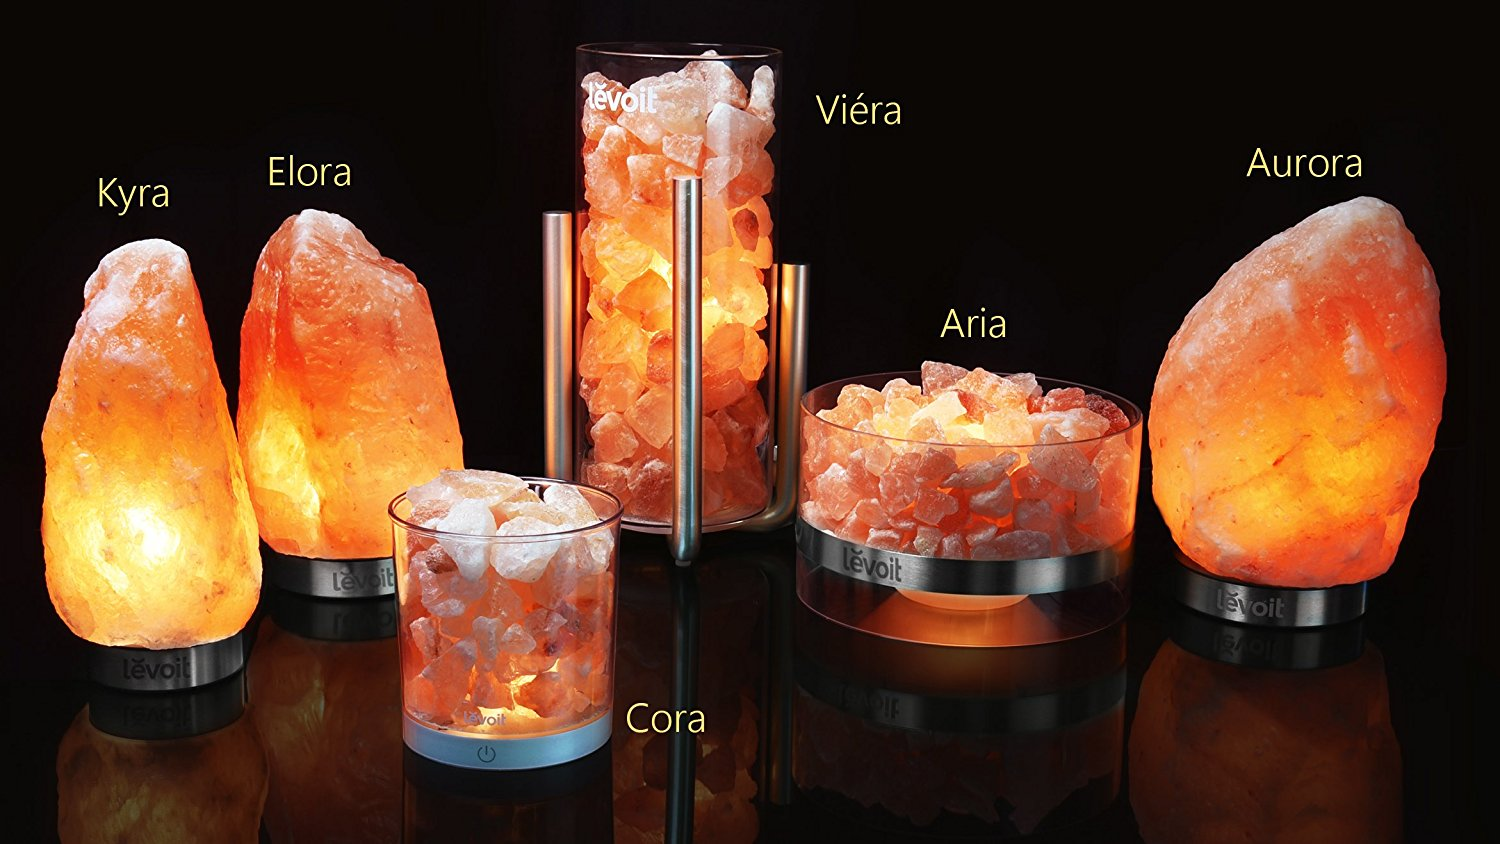 Feng Shui Decor With Beautiful Himalayan Salt Lamp That Brings Instant Serenity, Calmness and Air Purification... Ahhh